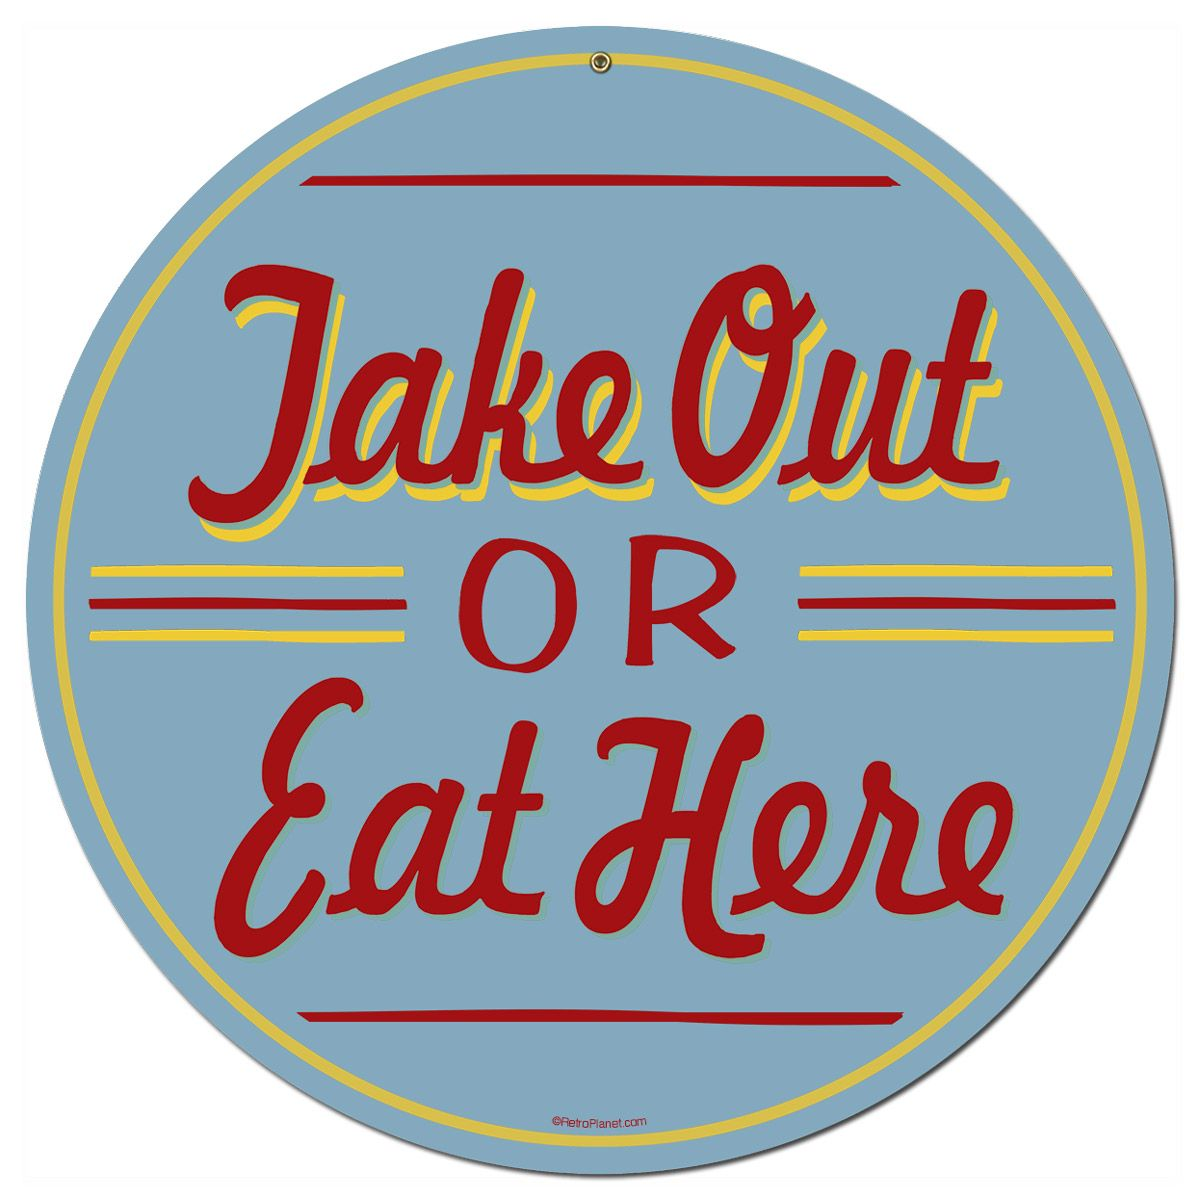 Take Out Or Eat Here Round Diner Kitchen Sign | Vintage diner ...